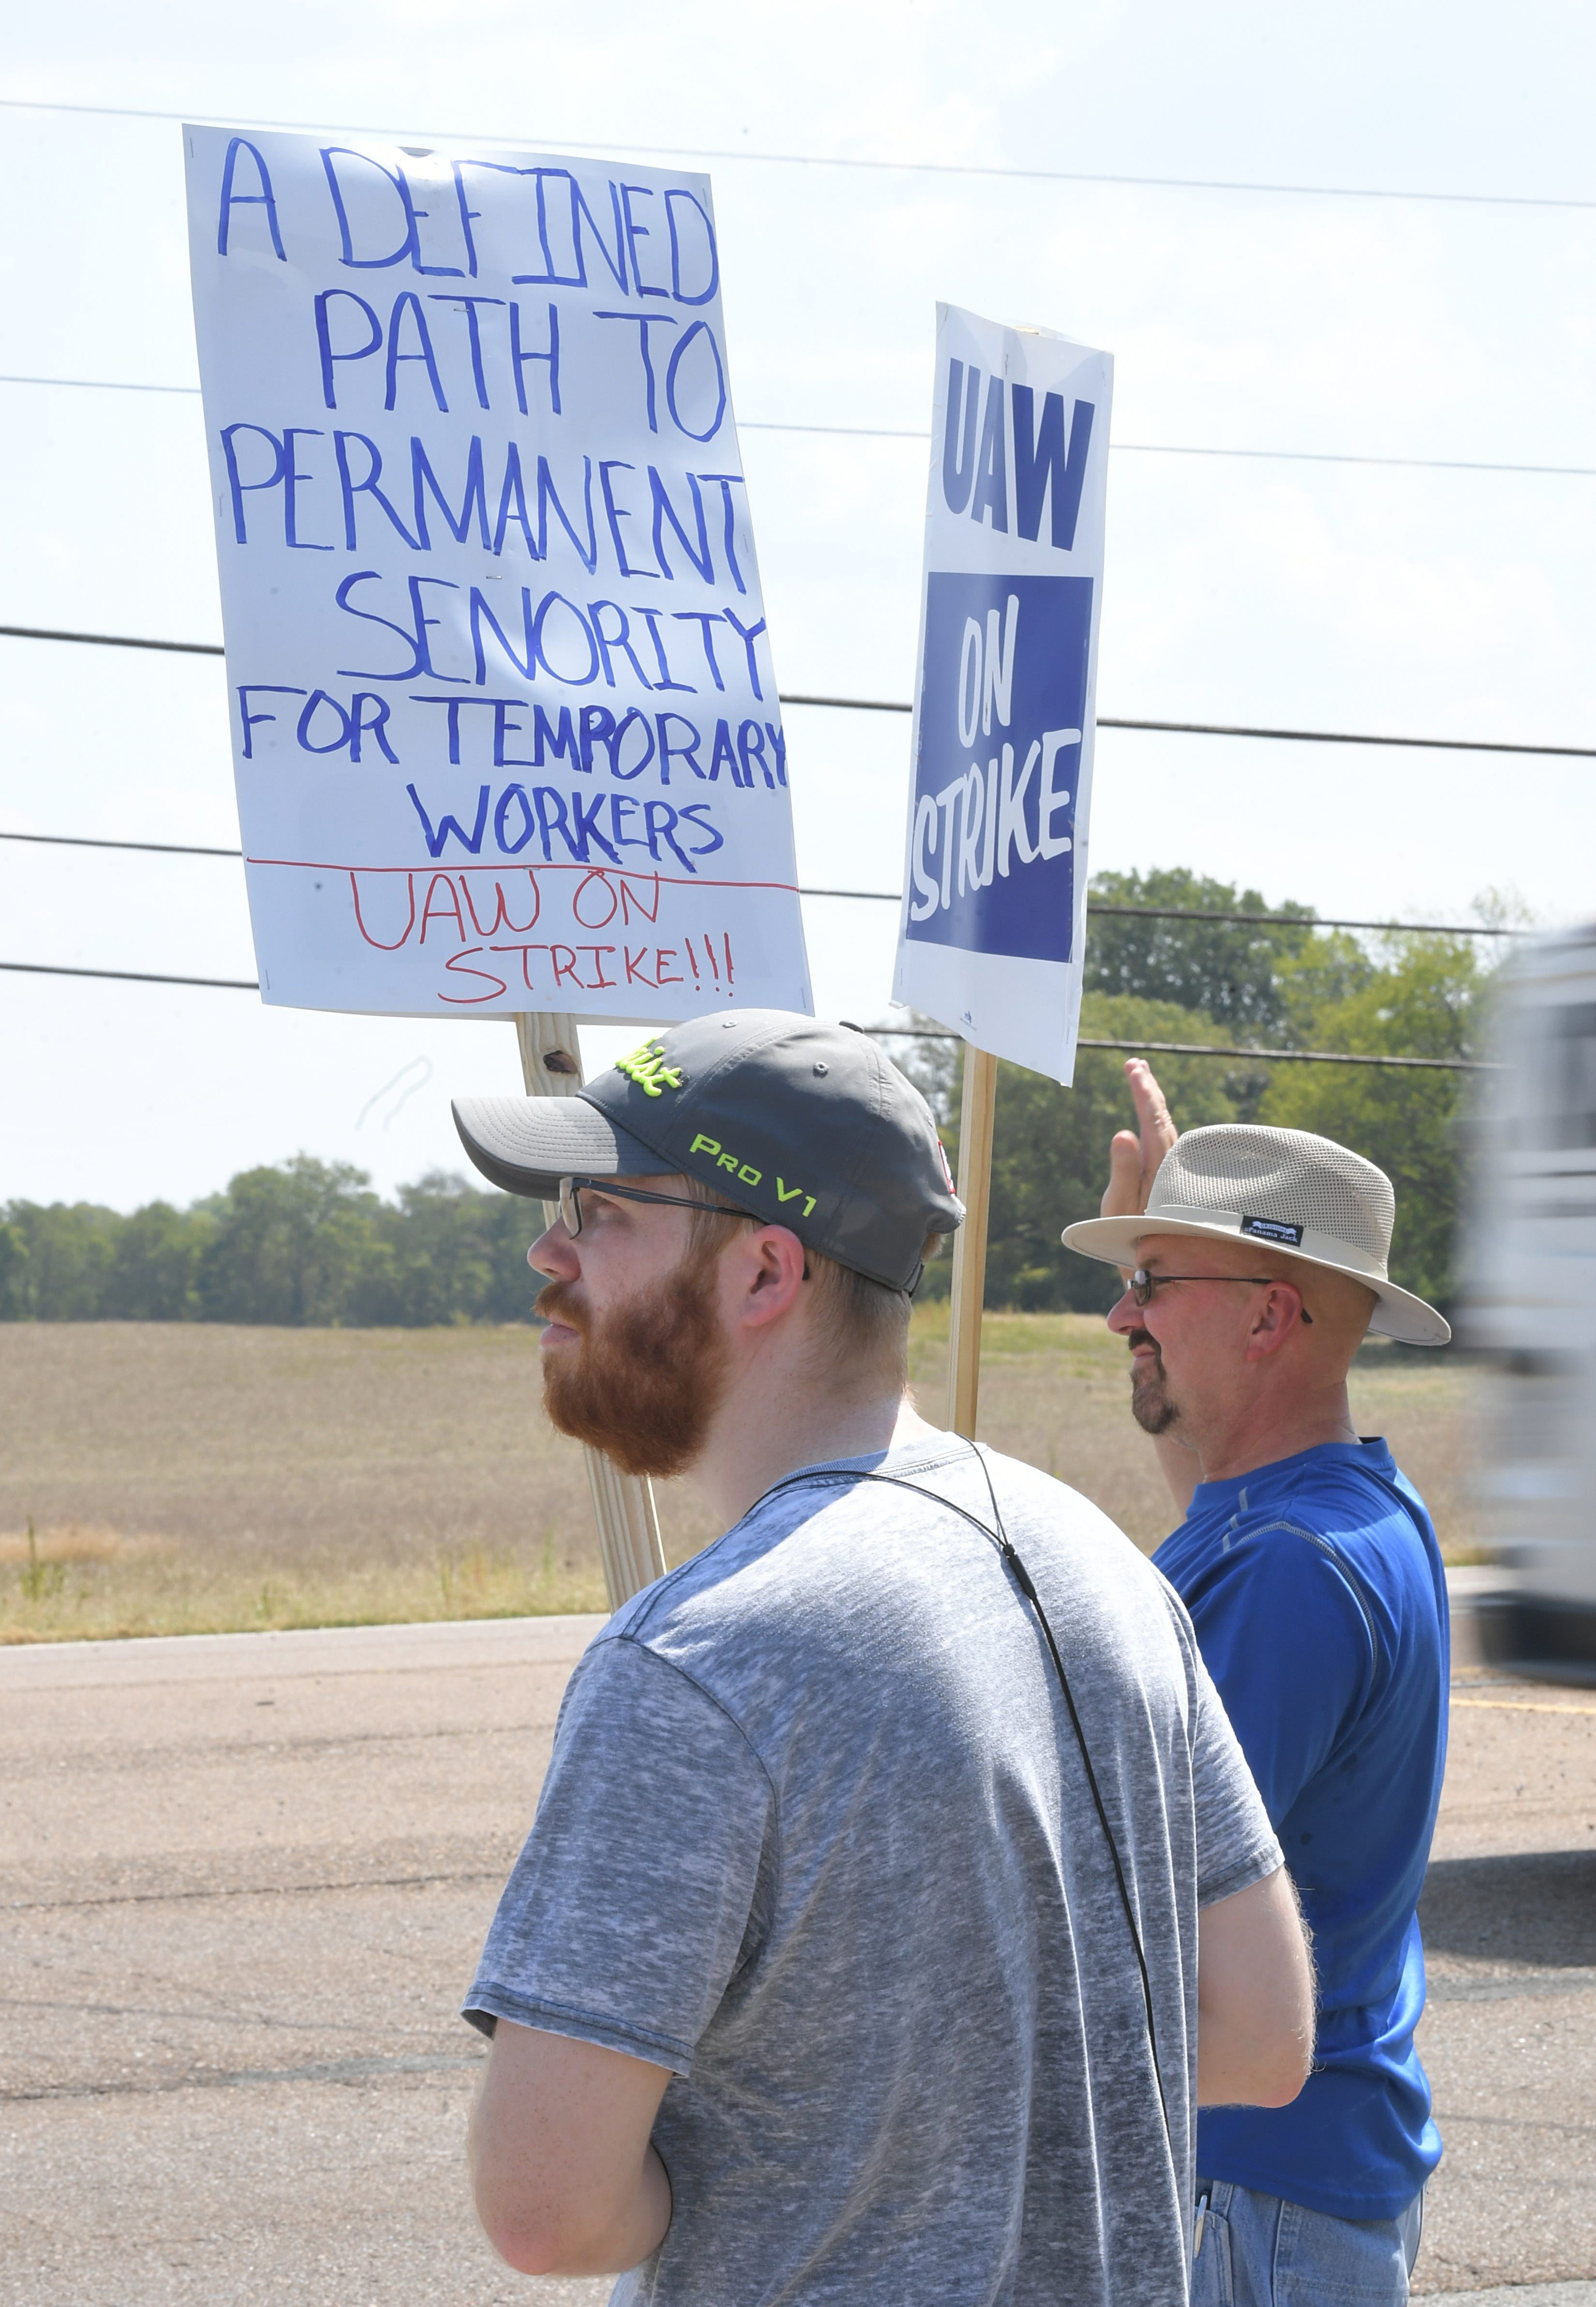 Automaker gets Tennessee court order against UAW picketers